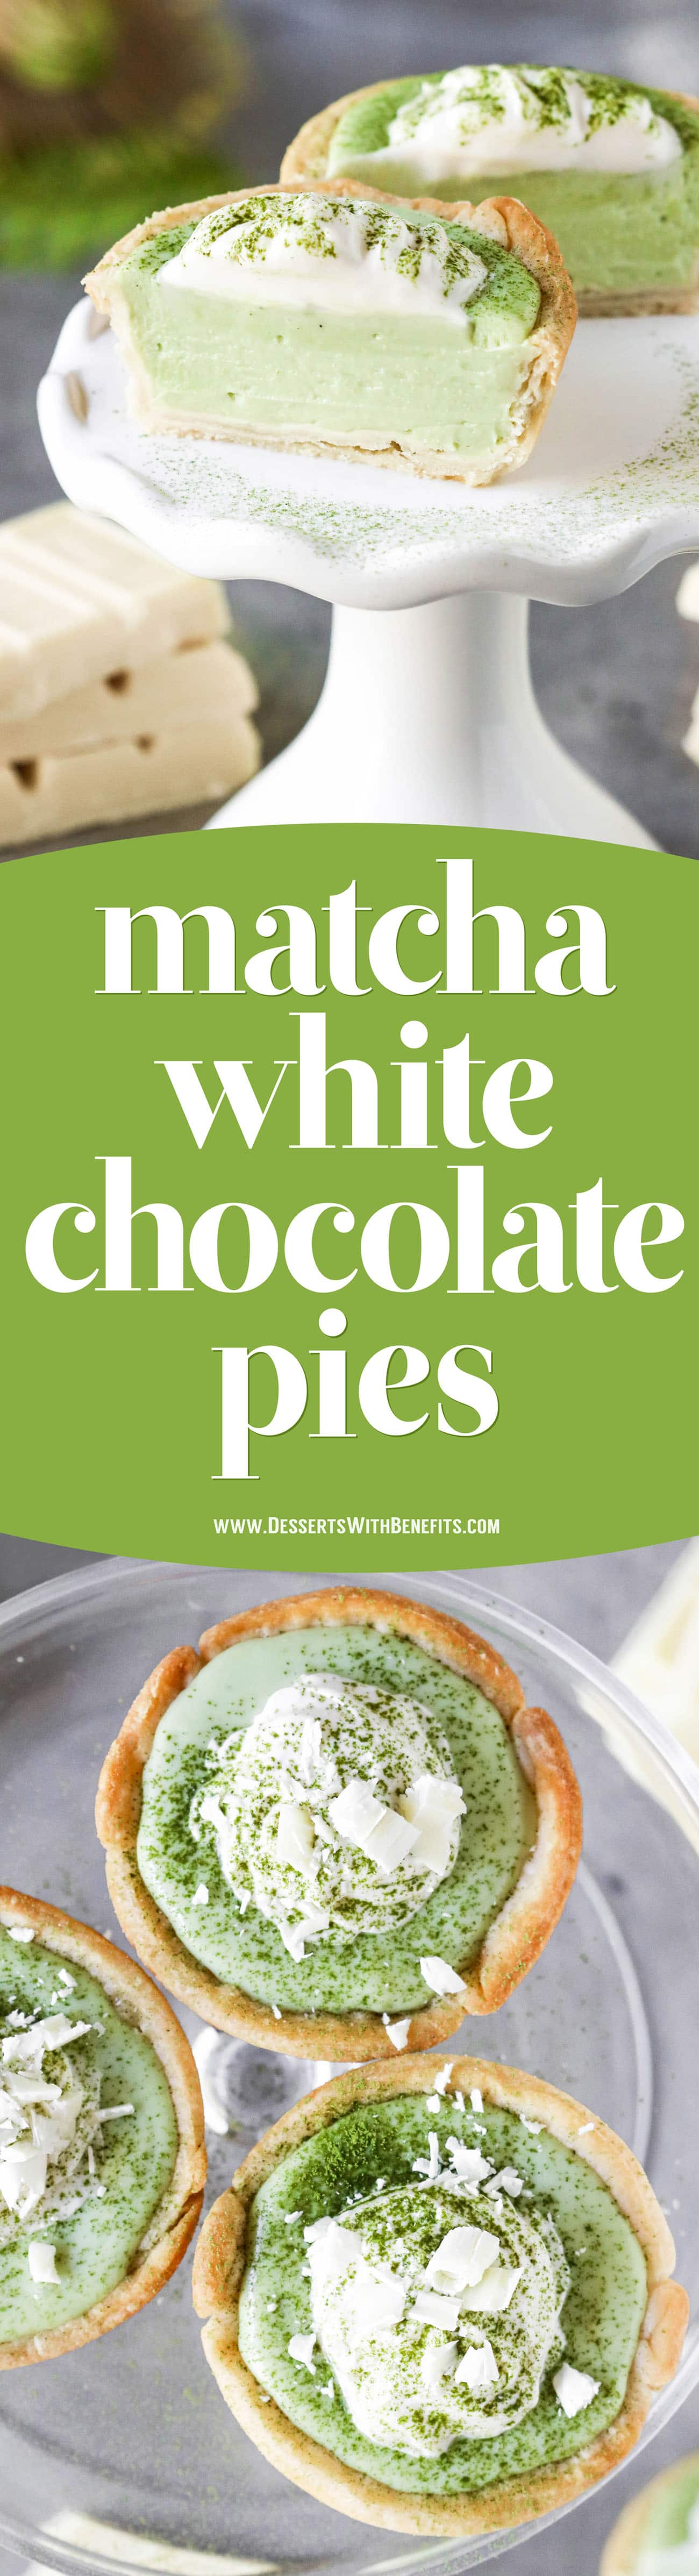 These Mini Matcha Green Tea White Chocolate Pies have a light and flaky pie crust filled with a creamy, sweet, delicious matcha-white chocolate filling.